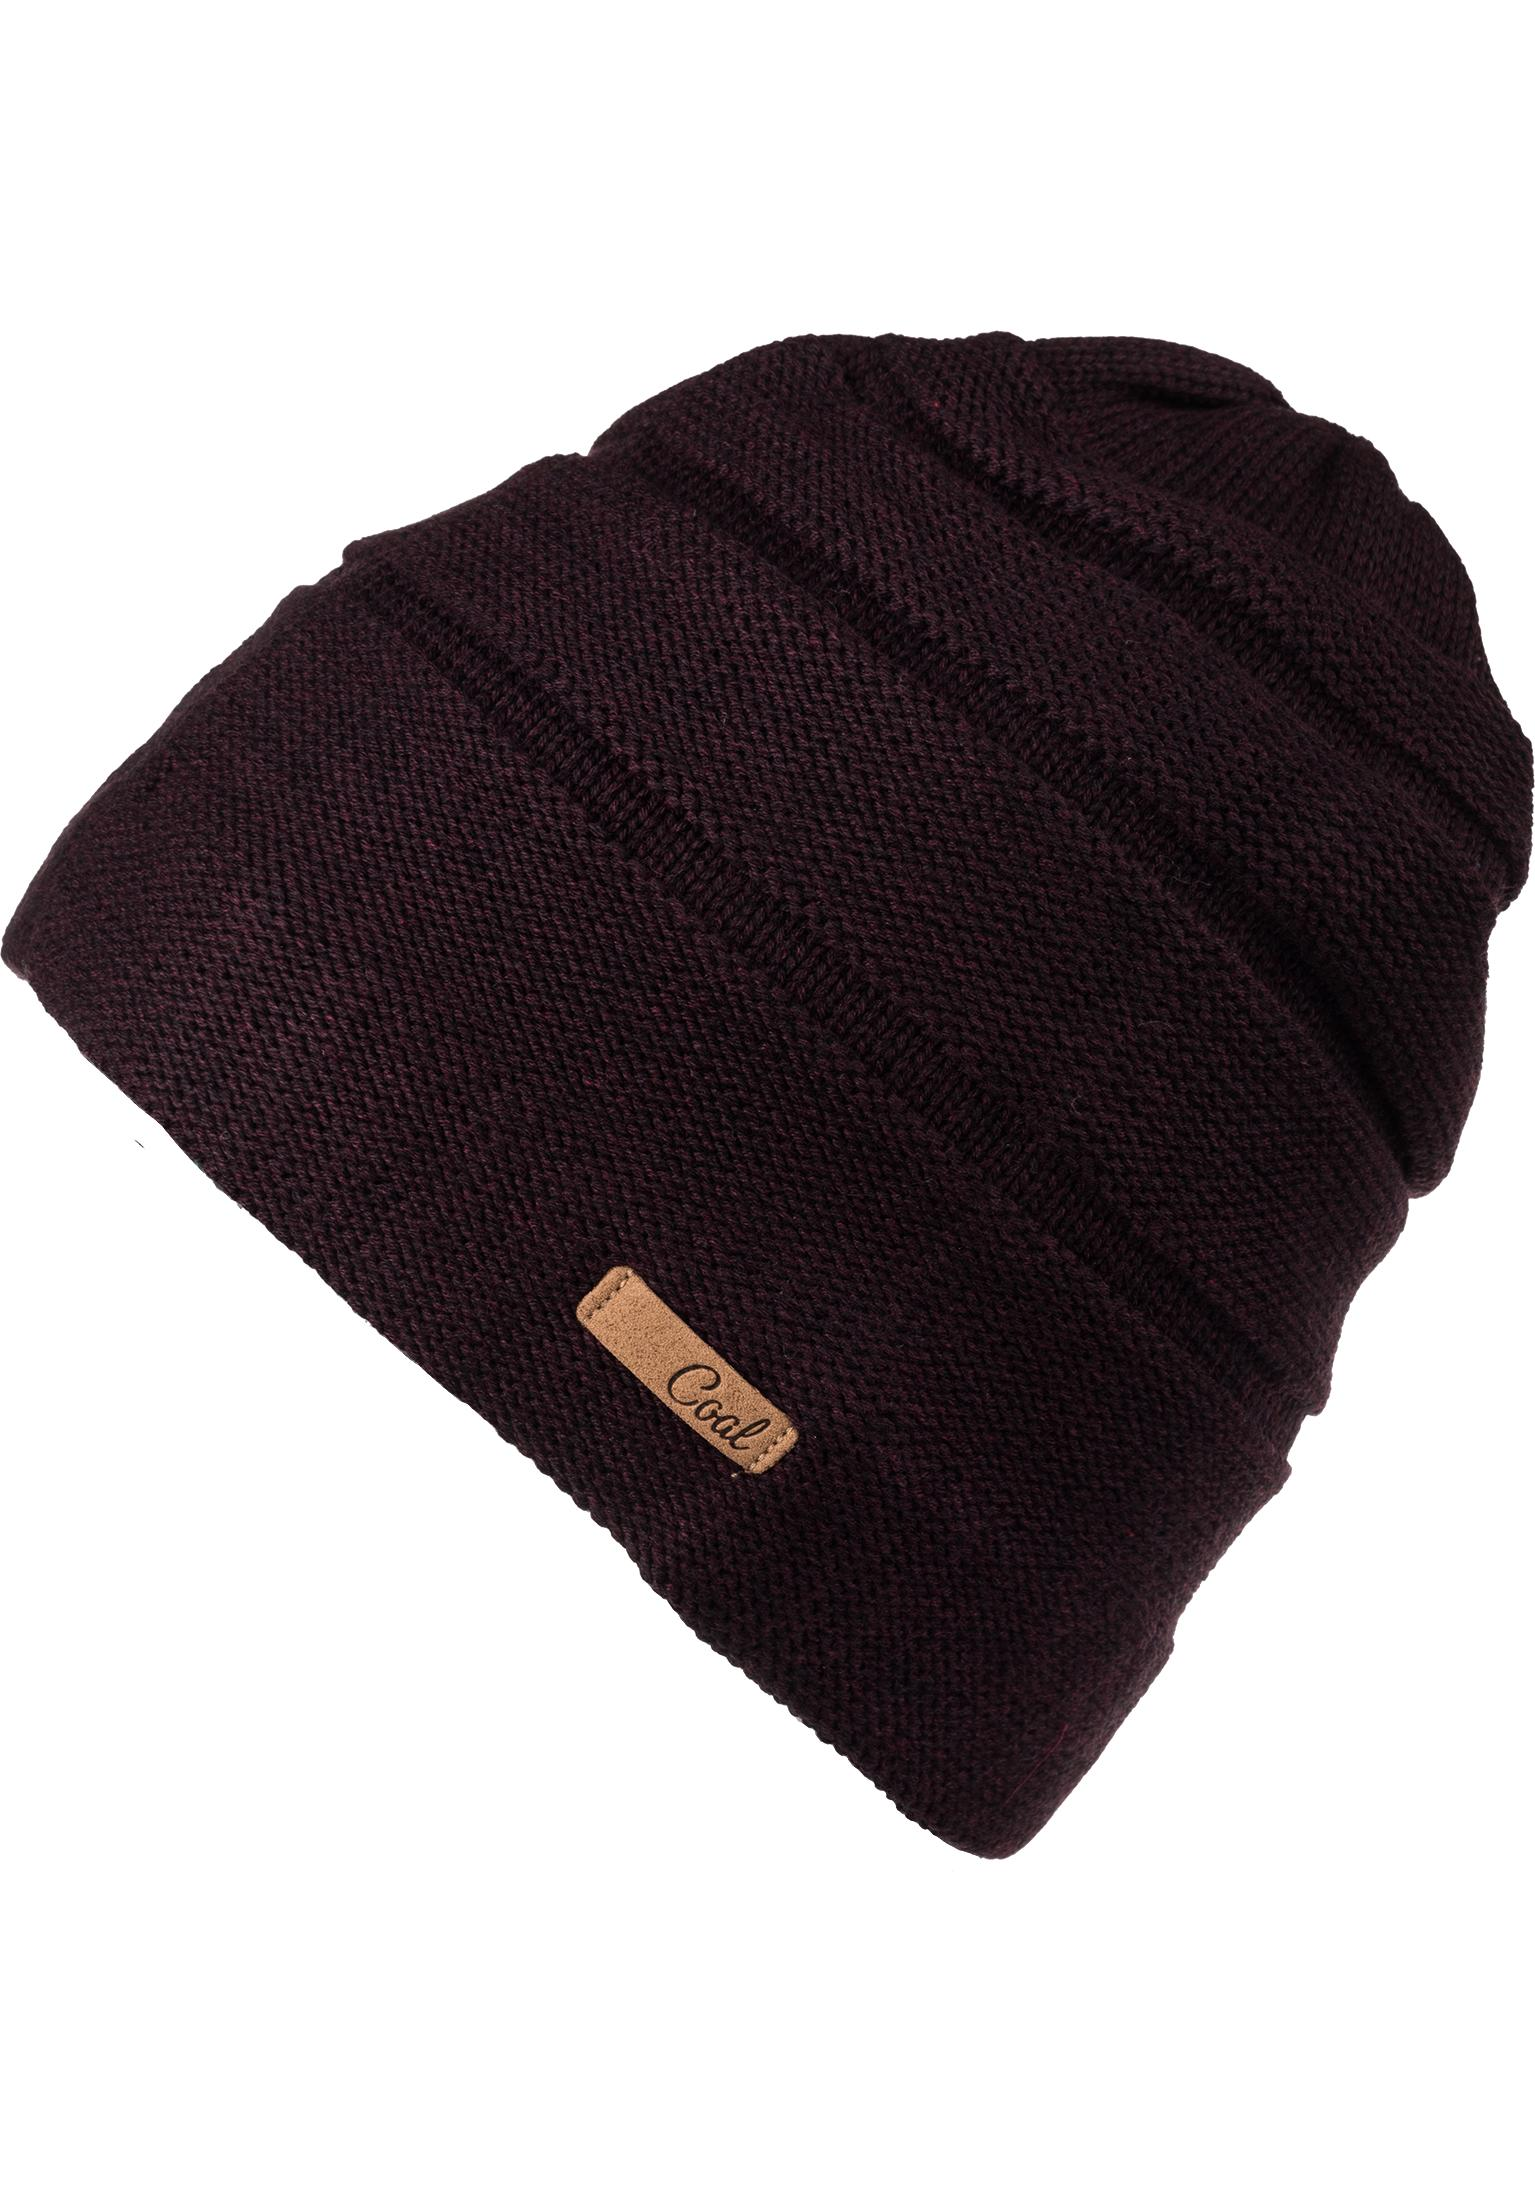 7fea07a0f899c The Cameron coal Beanies in plum for Women